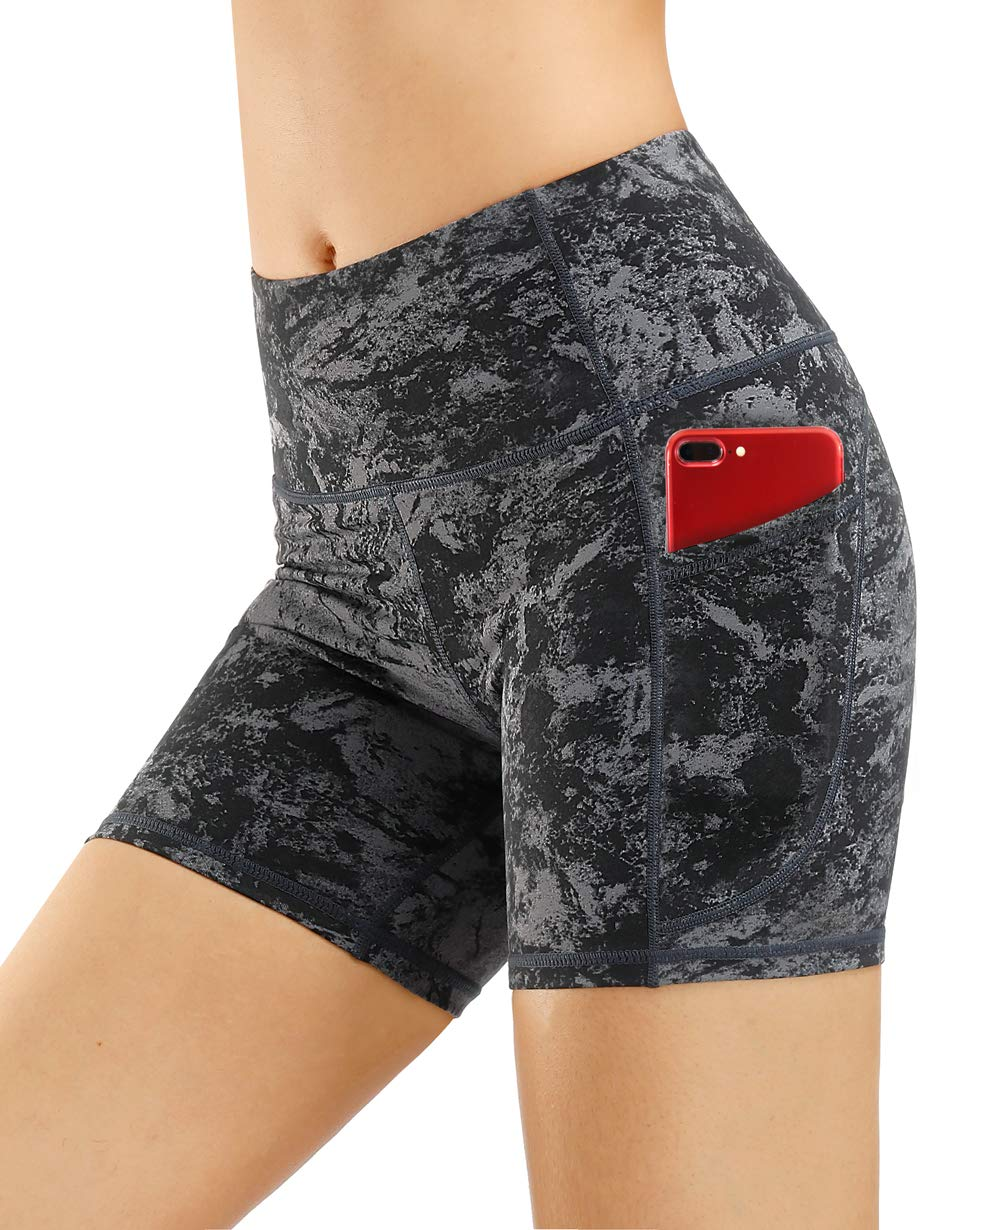 THE GYM PEOPLE High Waist Yoga Shorts for Women Tummy Control Fitness Athletic Workout Running Shorts with Deep Pockets (Small, Gray-Marble)